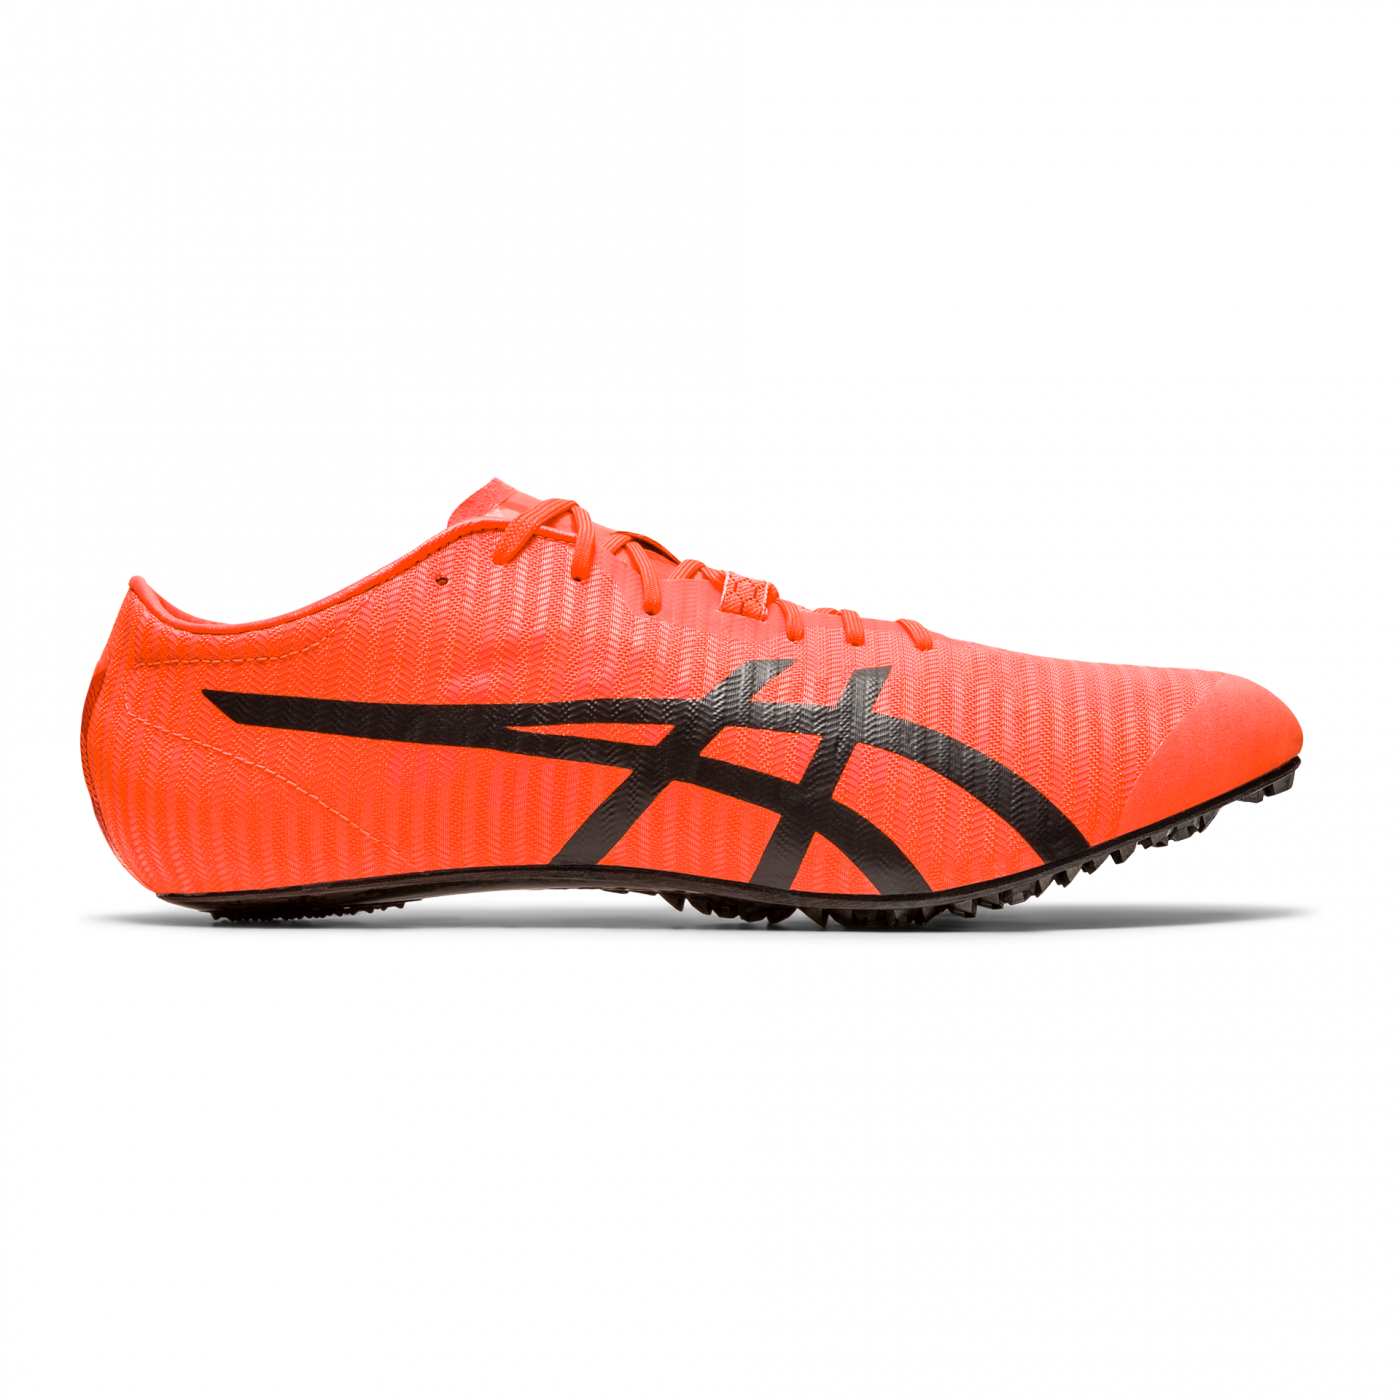 asics-metasprint-2020-spikeless-1